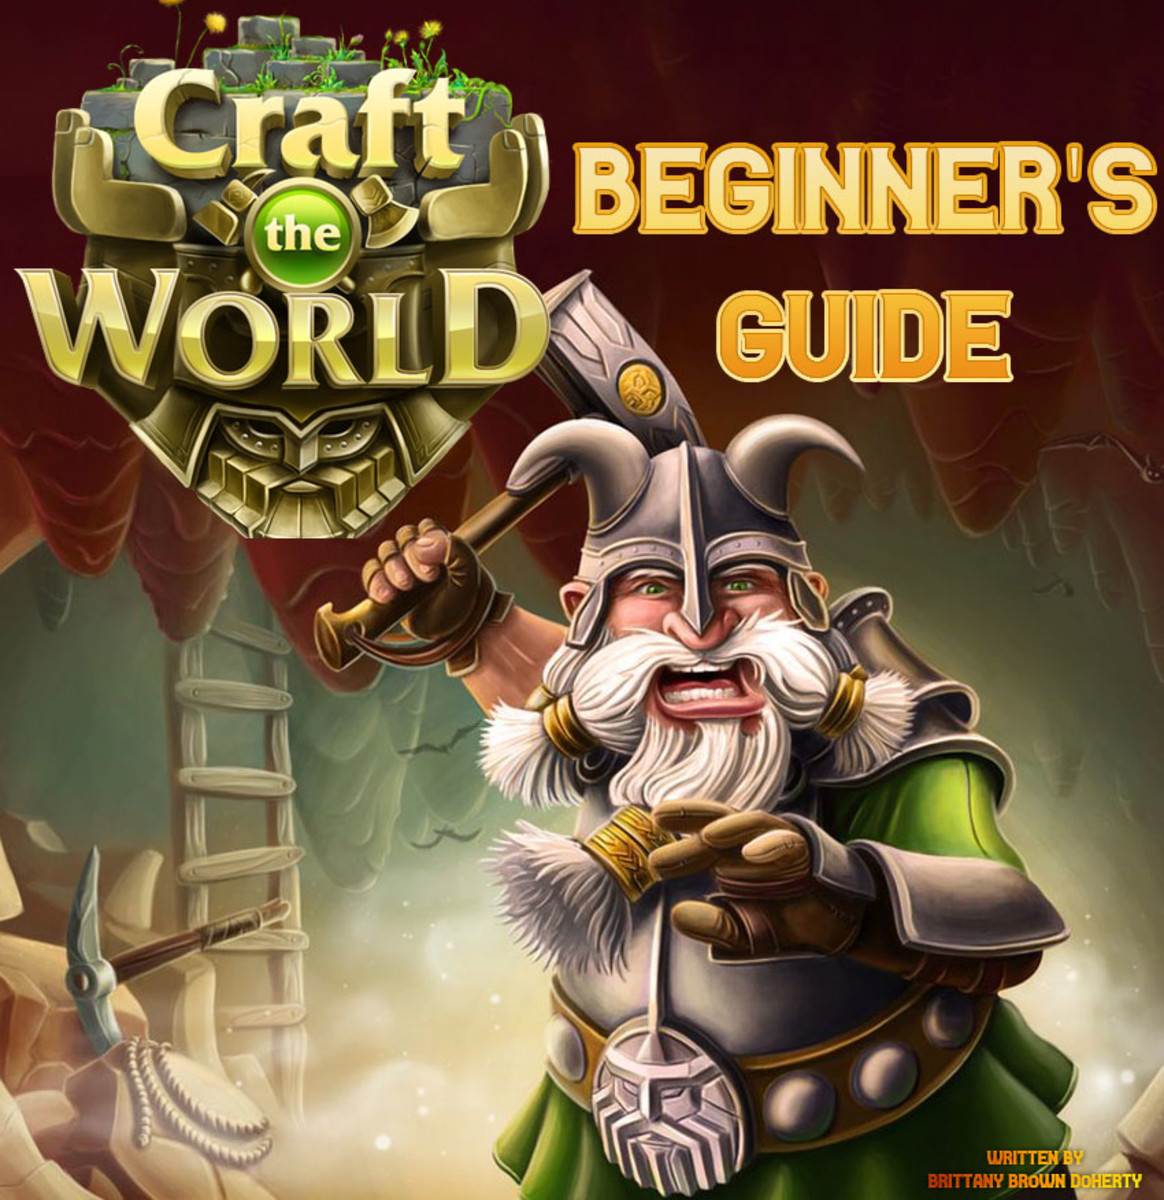 Craft the World Beginner's Guide: How to Get Started in the game!